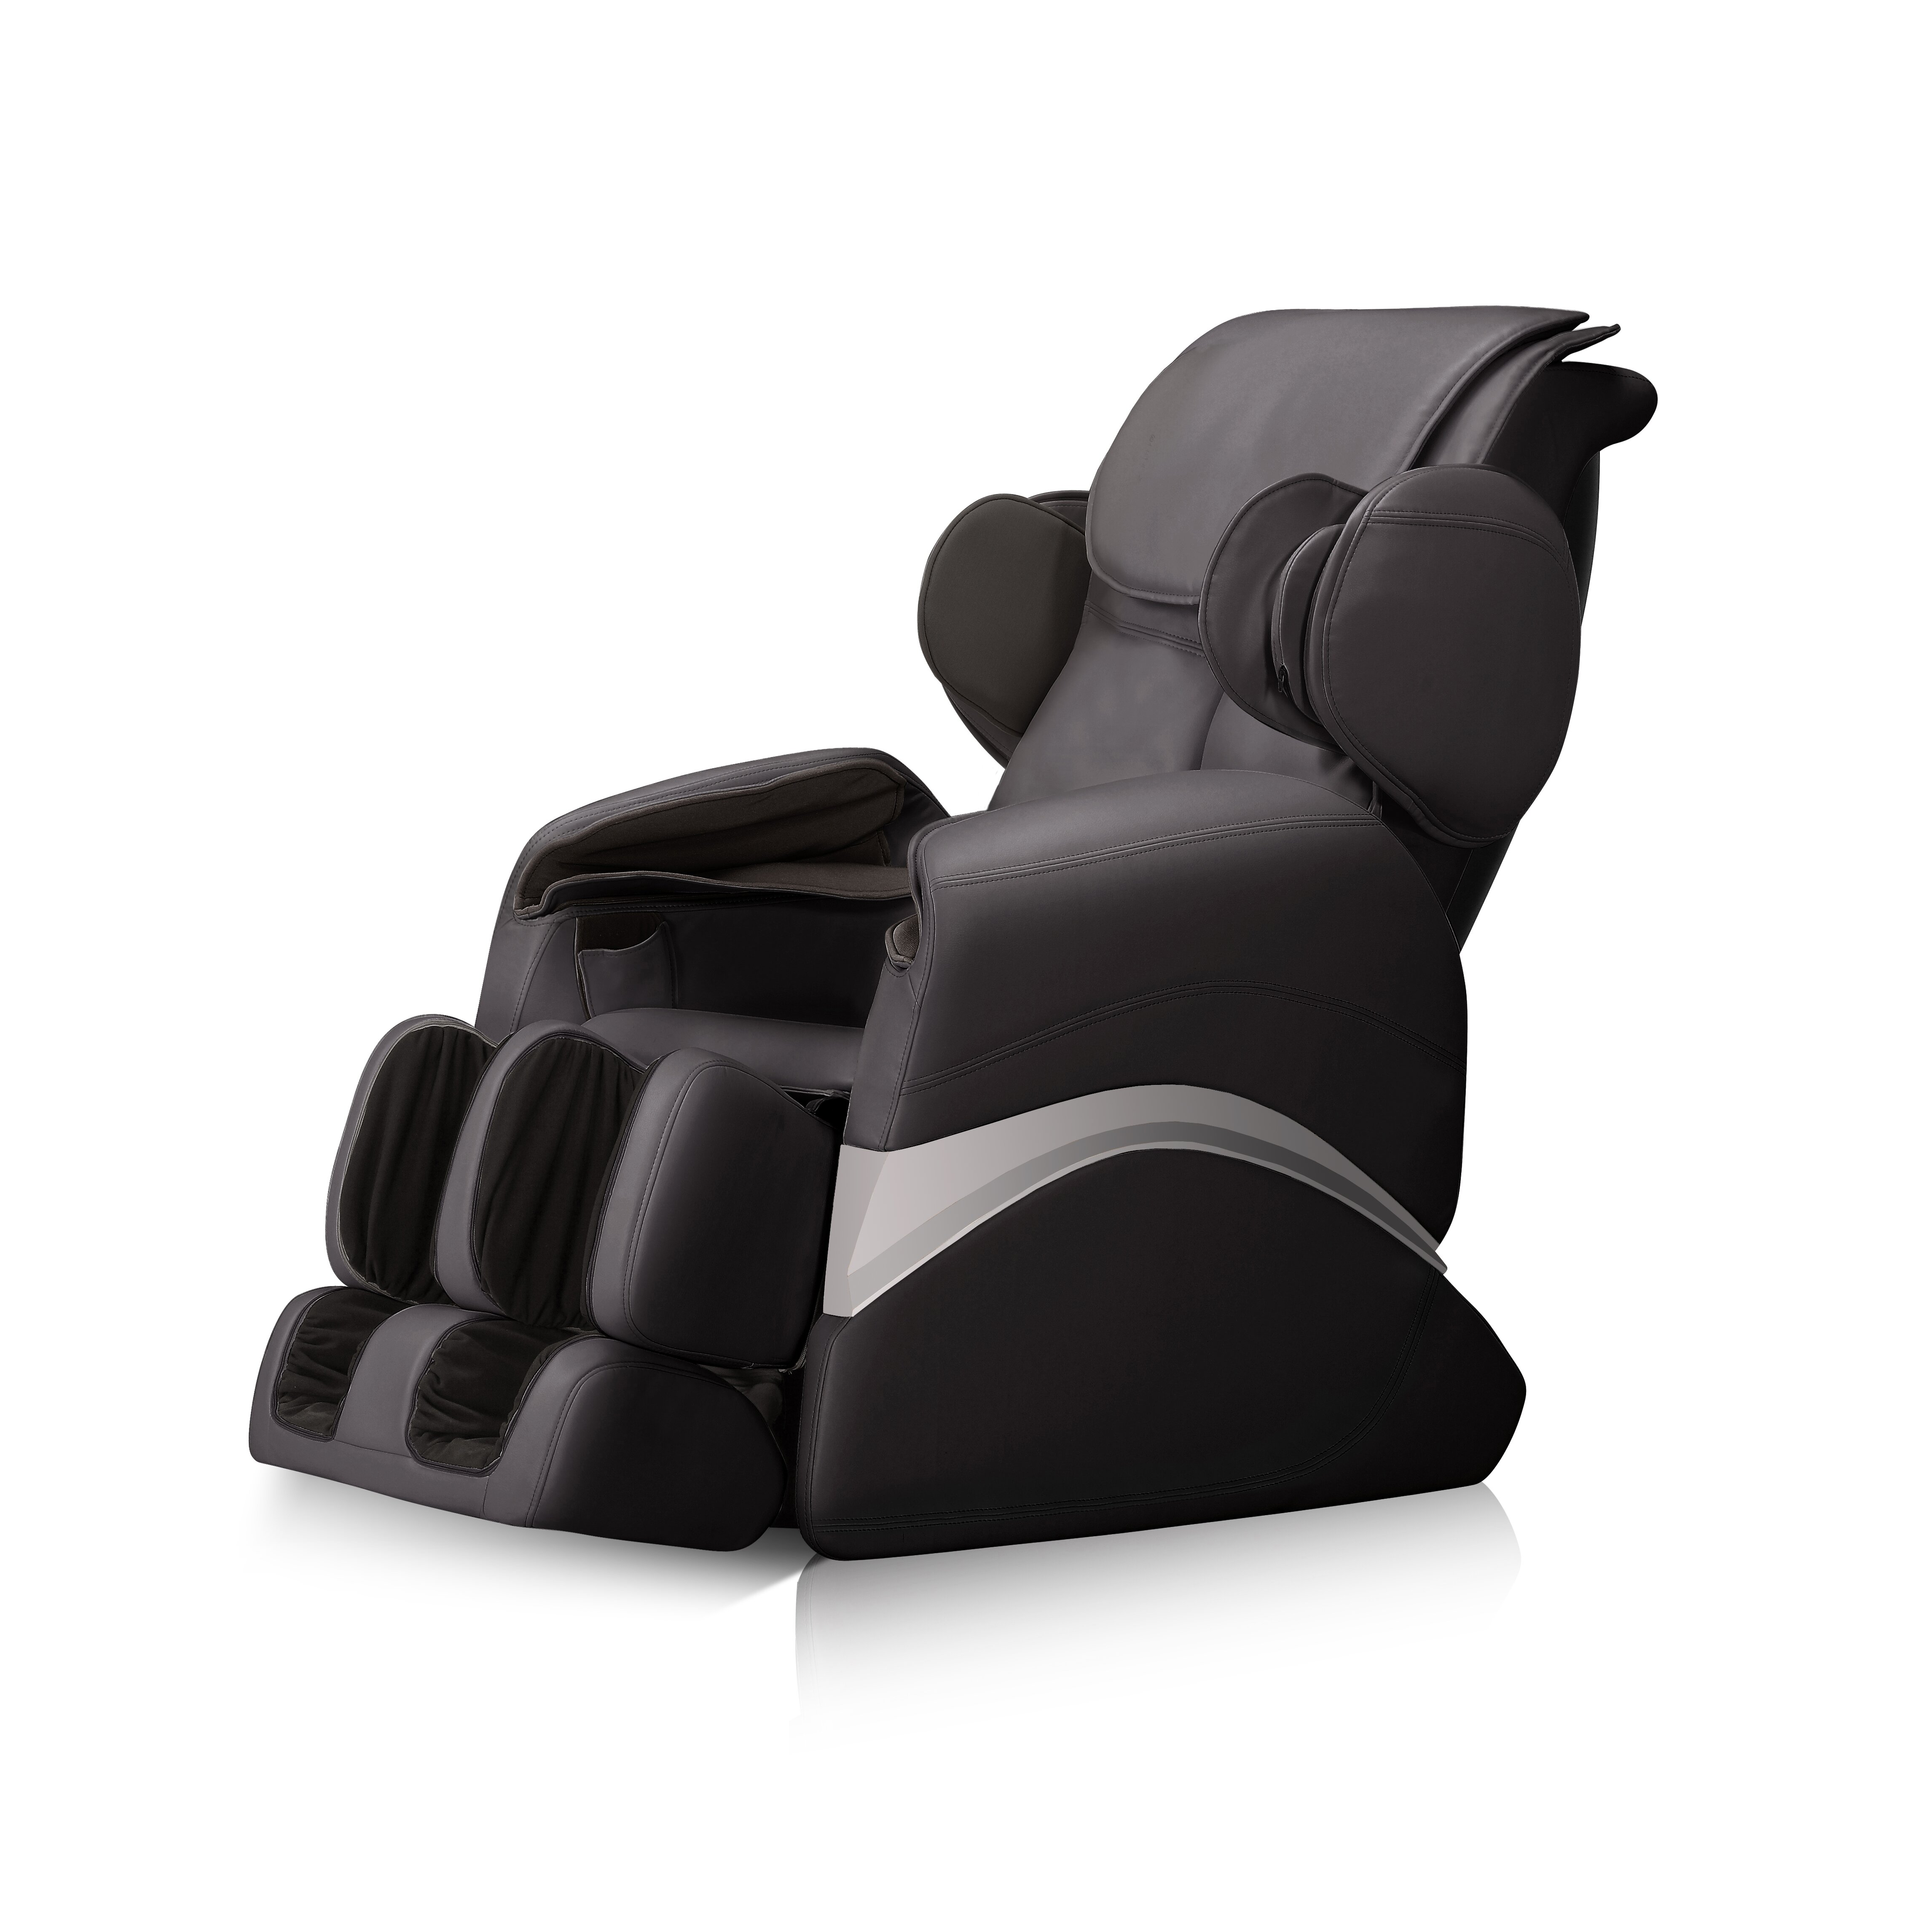 Balance Board London Drugs: IComfort Faux Leather Zero Gravity Massage Chair With